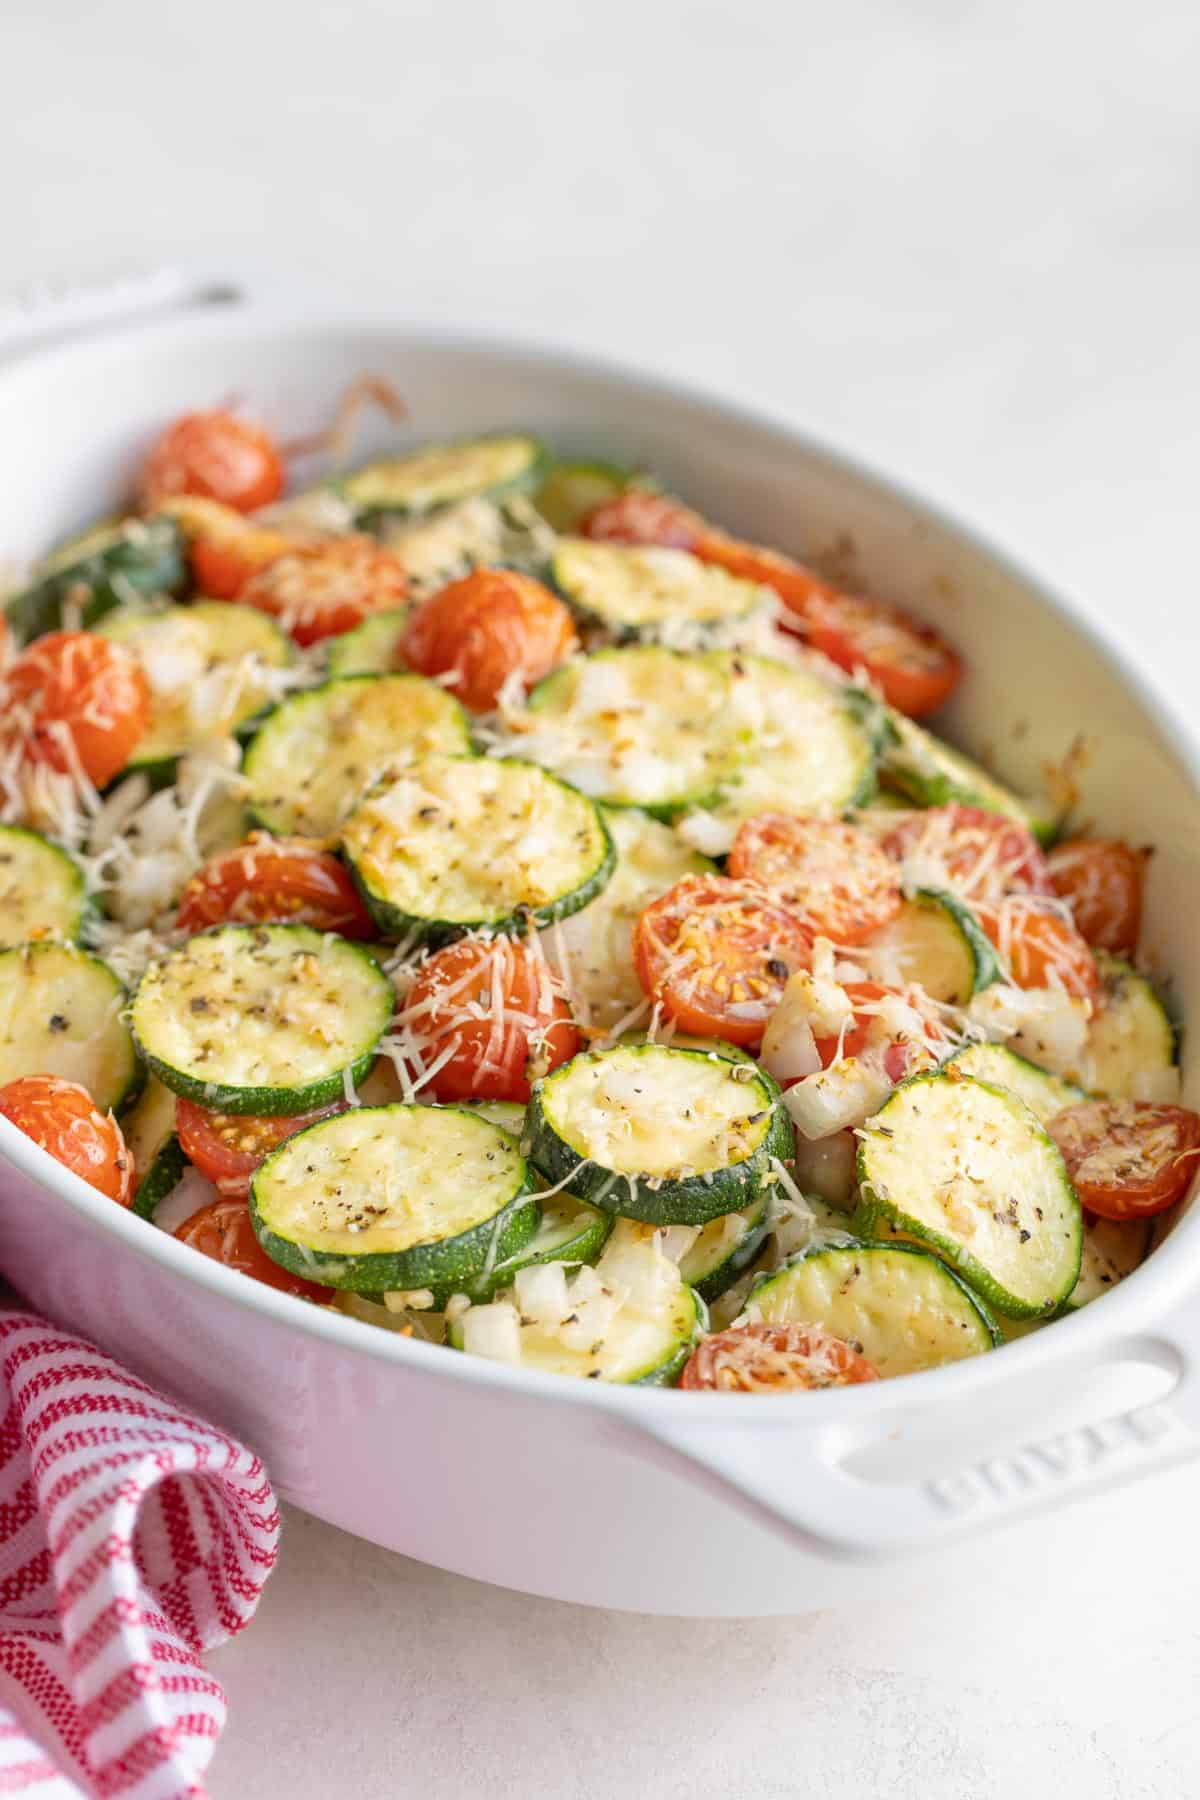 Front closeup view of zucchini tomato bake in a white baking dish.